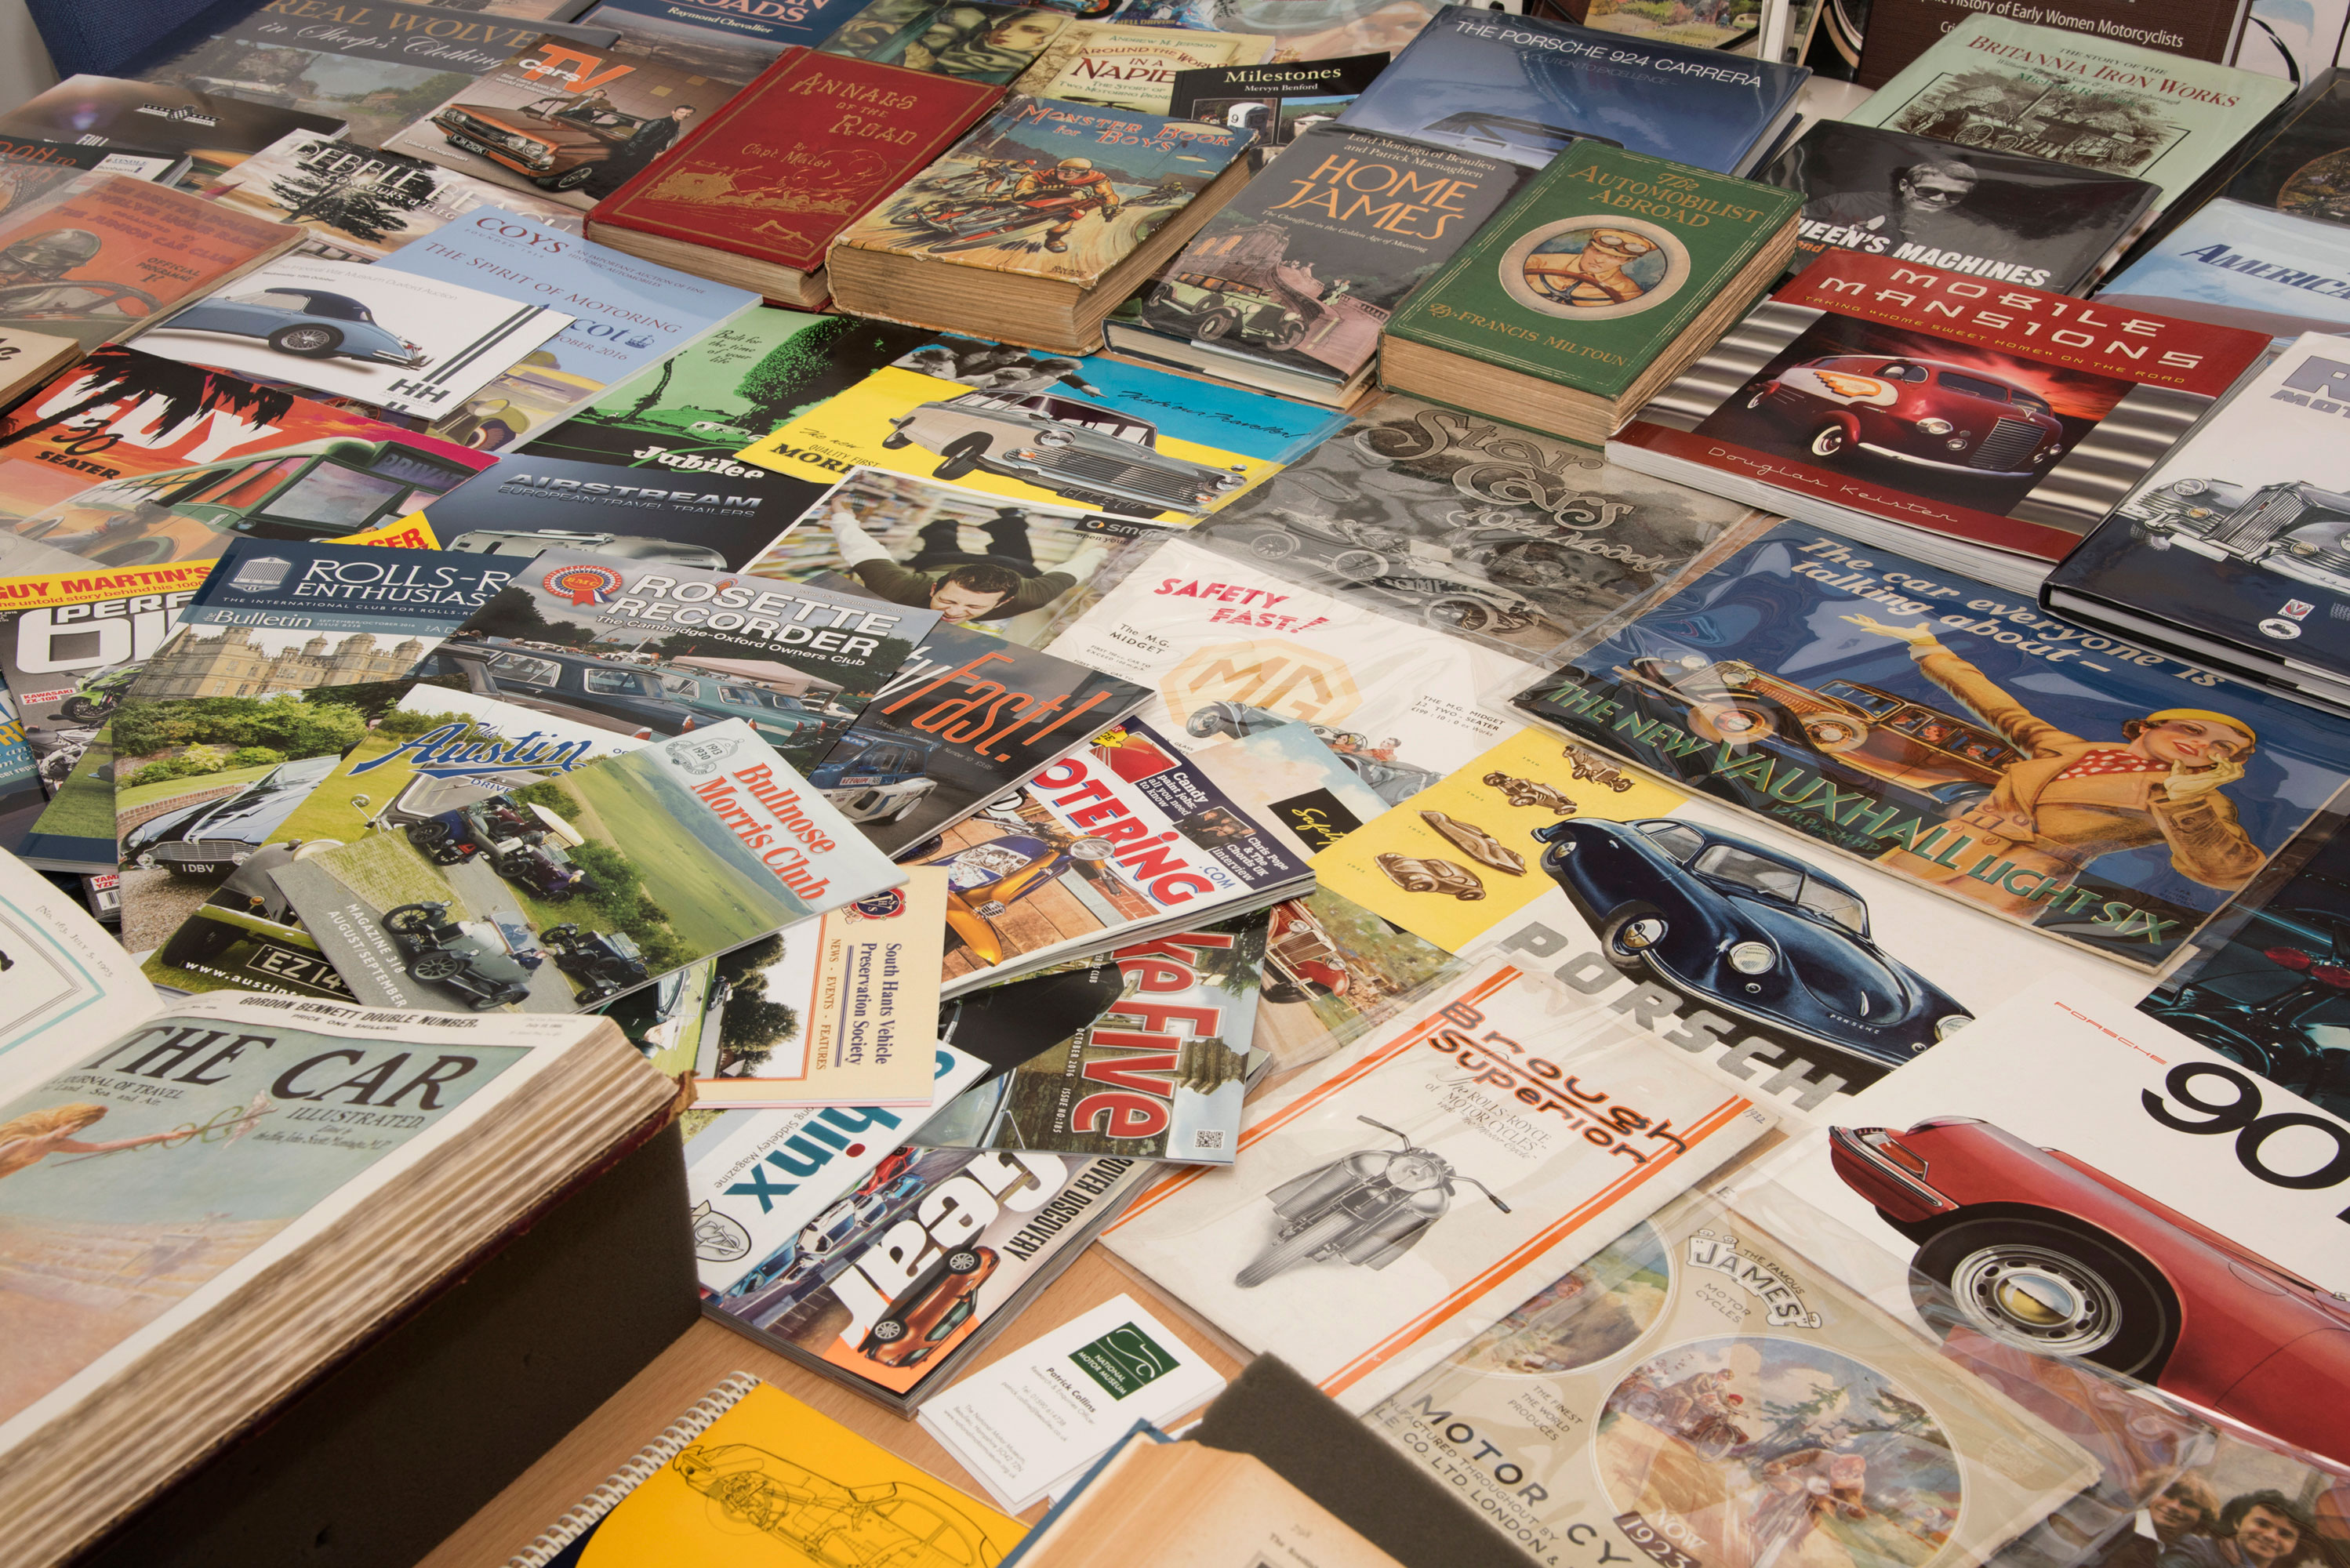 A collection of historic motoring magazines and books